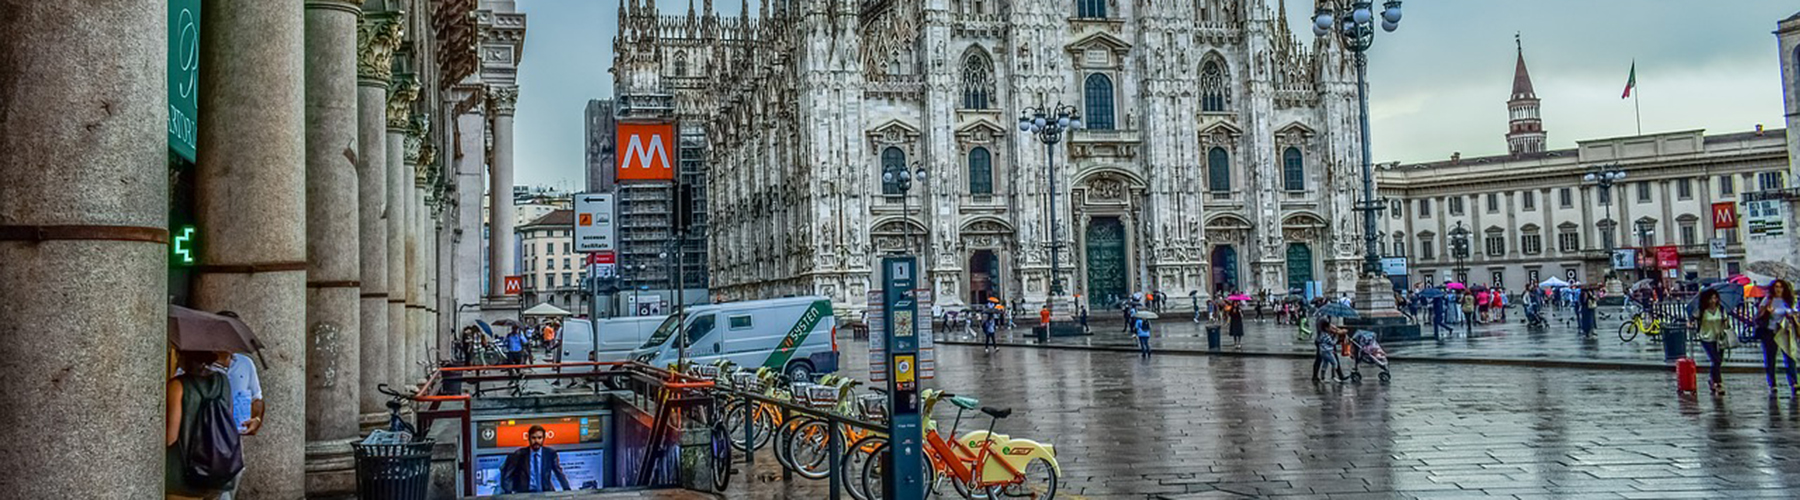 Milan – Hostels close to City Center. Maps for Milan, Photos and Reviews for each hostel in Milan.